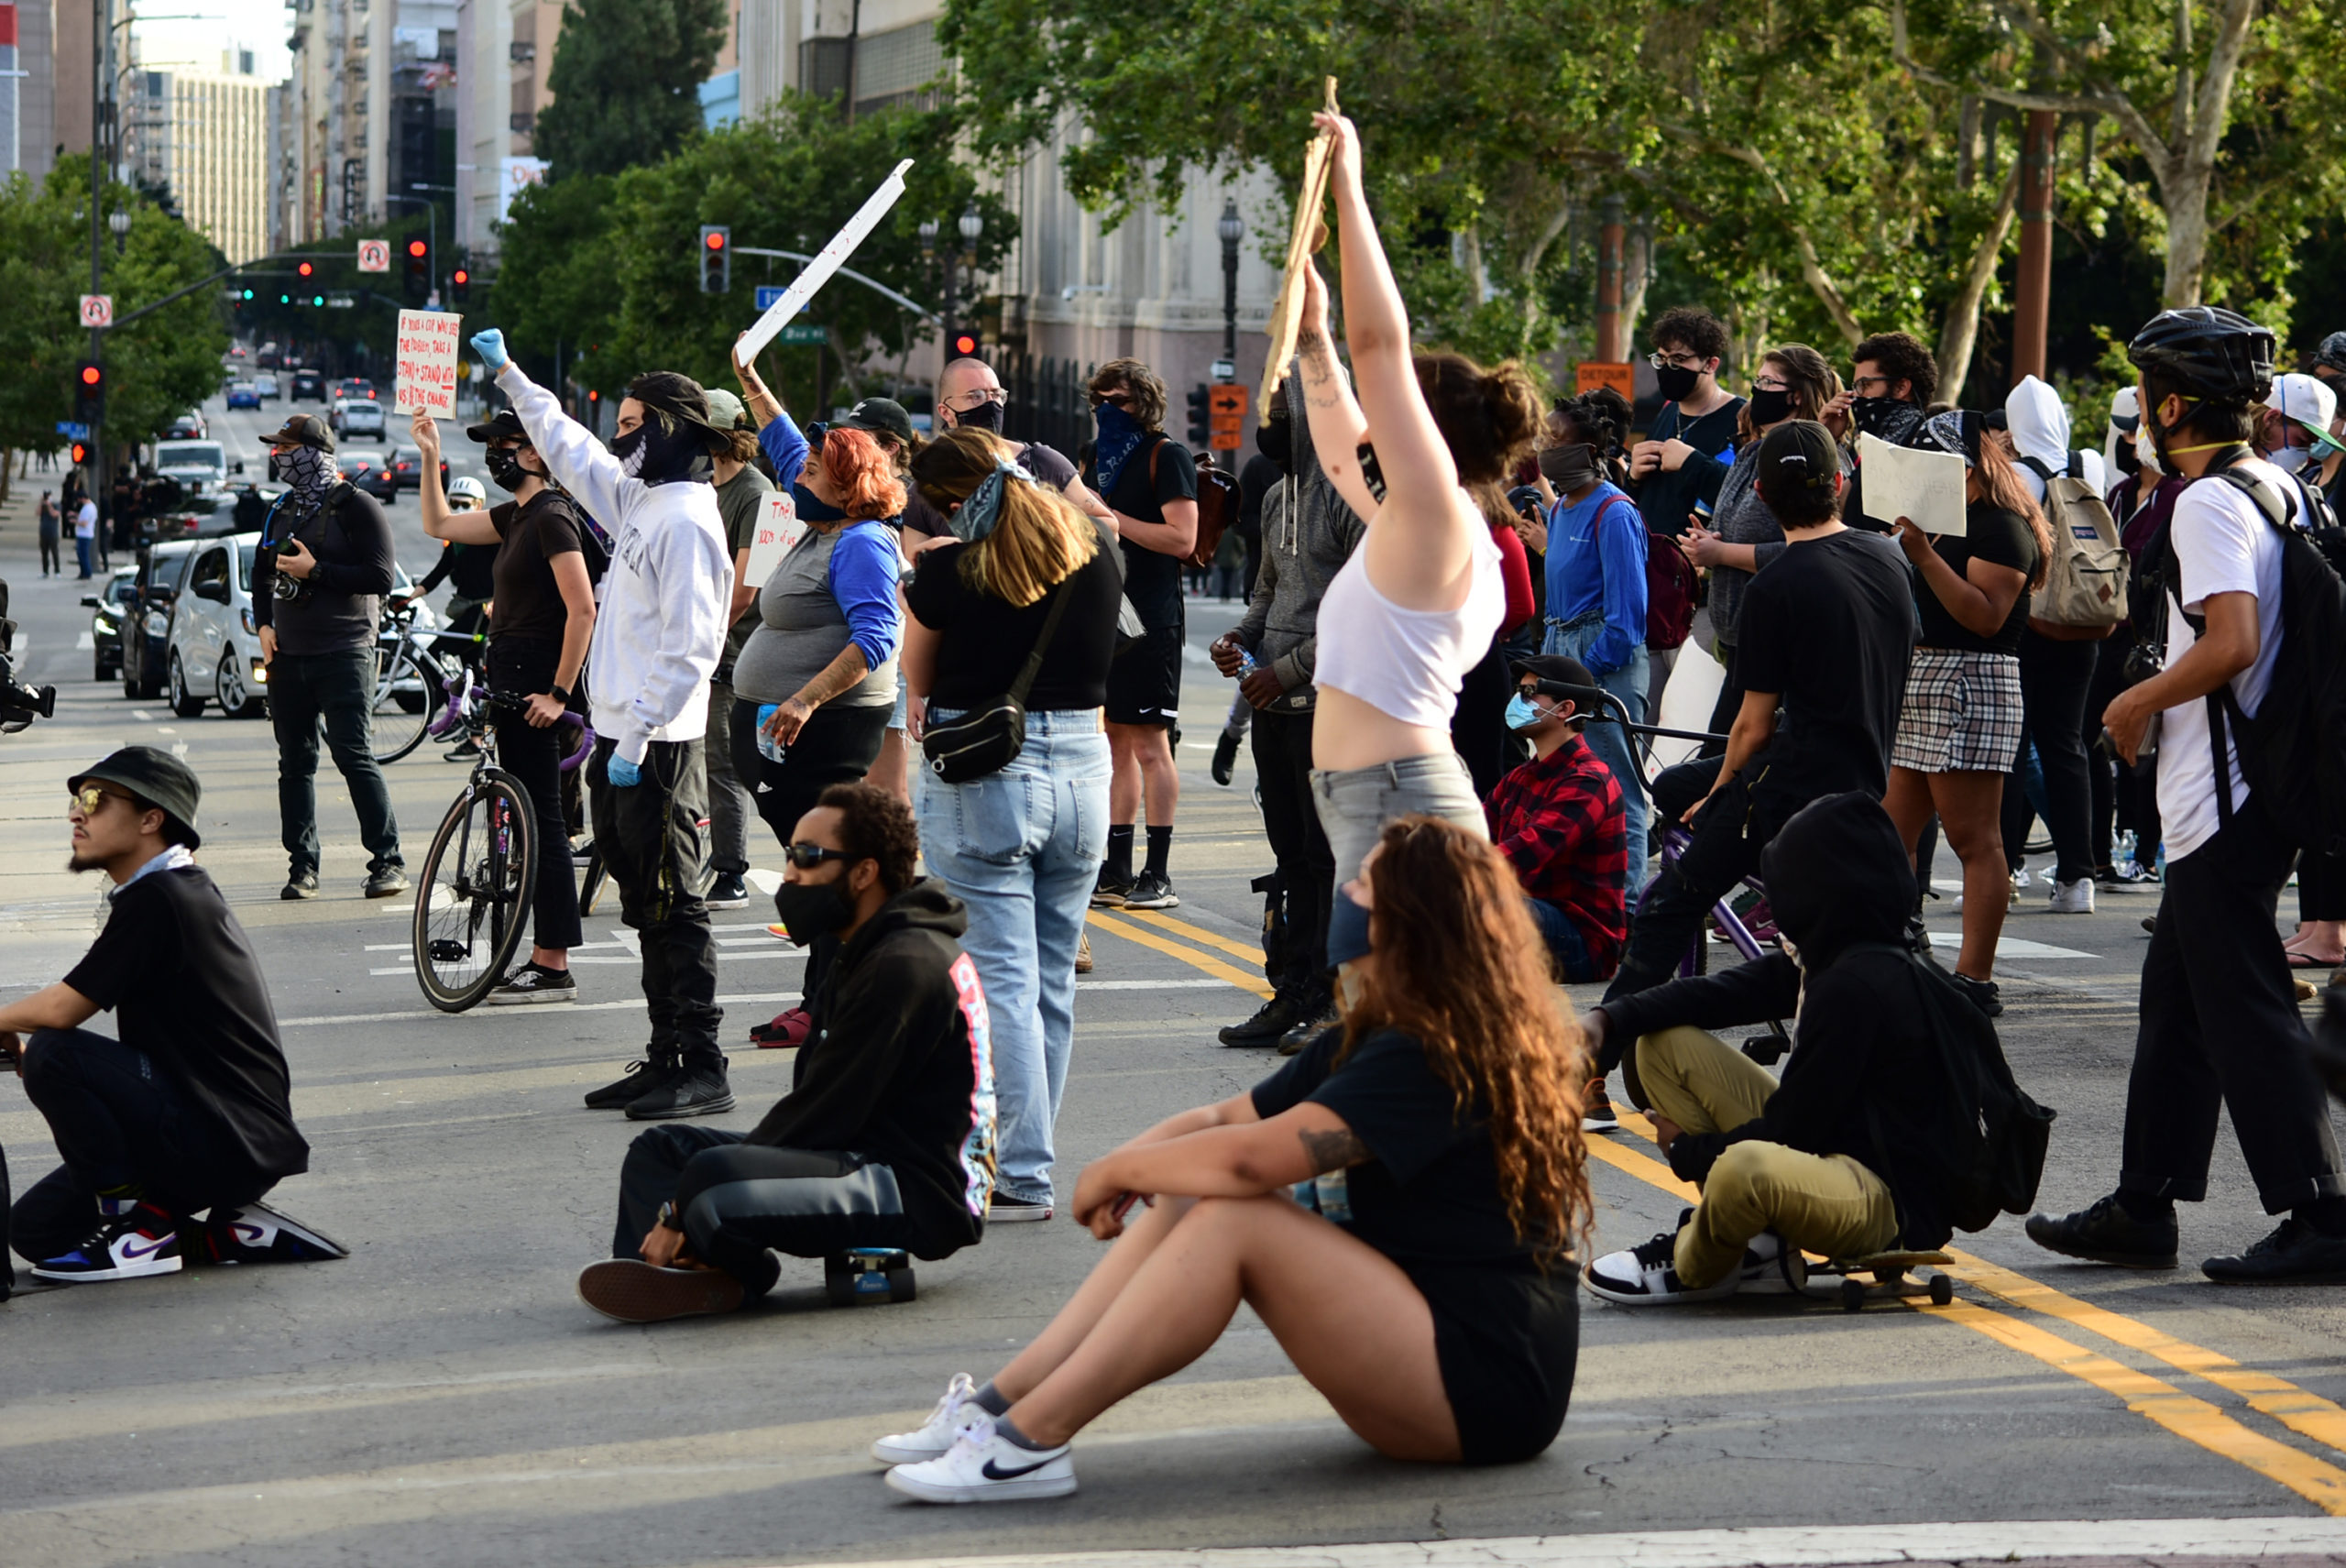 south-pasadena-news-05-31-2020-george-floyd-blm-black-lives-matter-protests-los-angeles-day-2-99